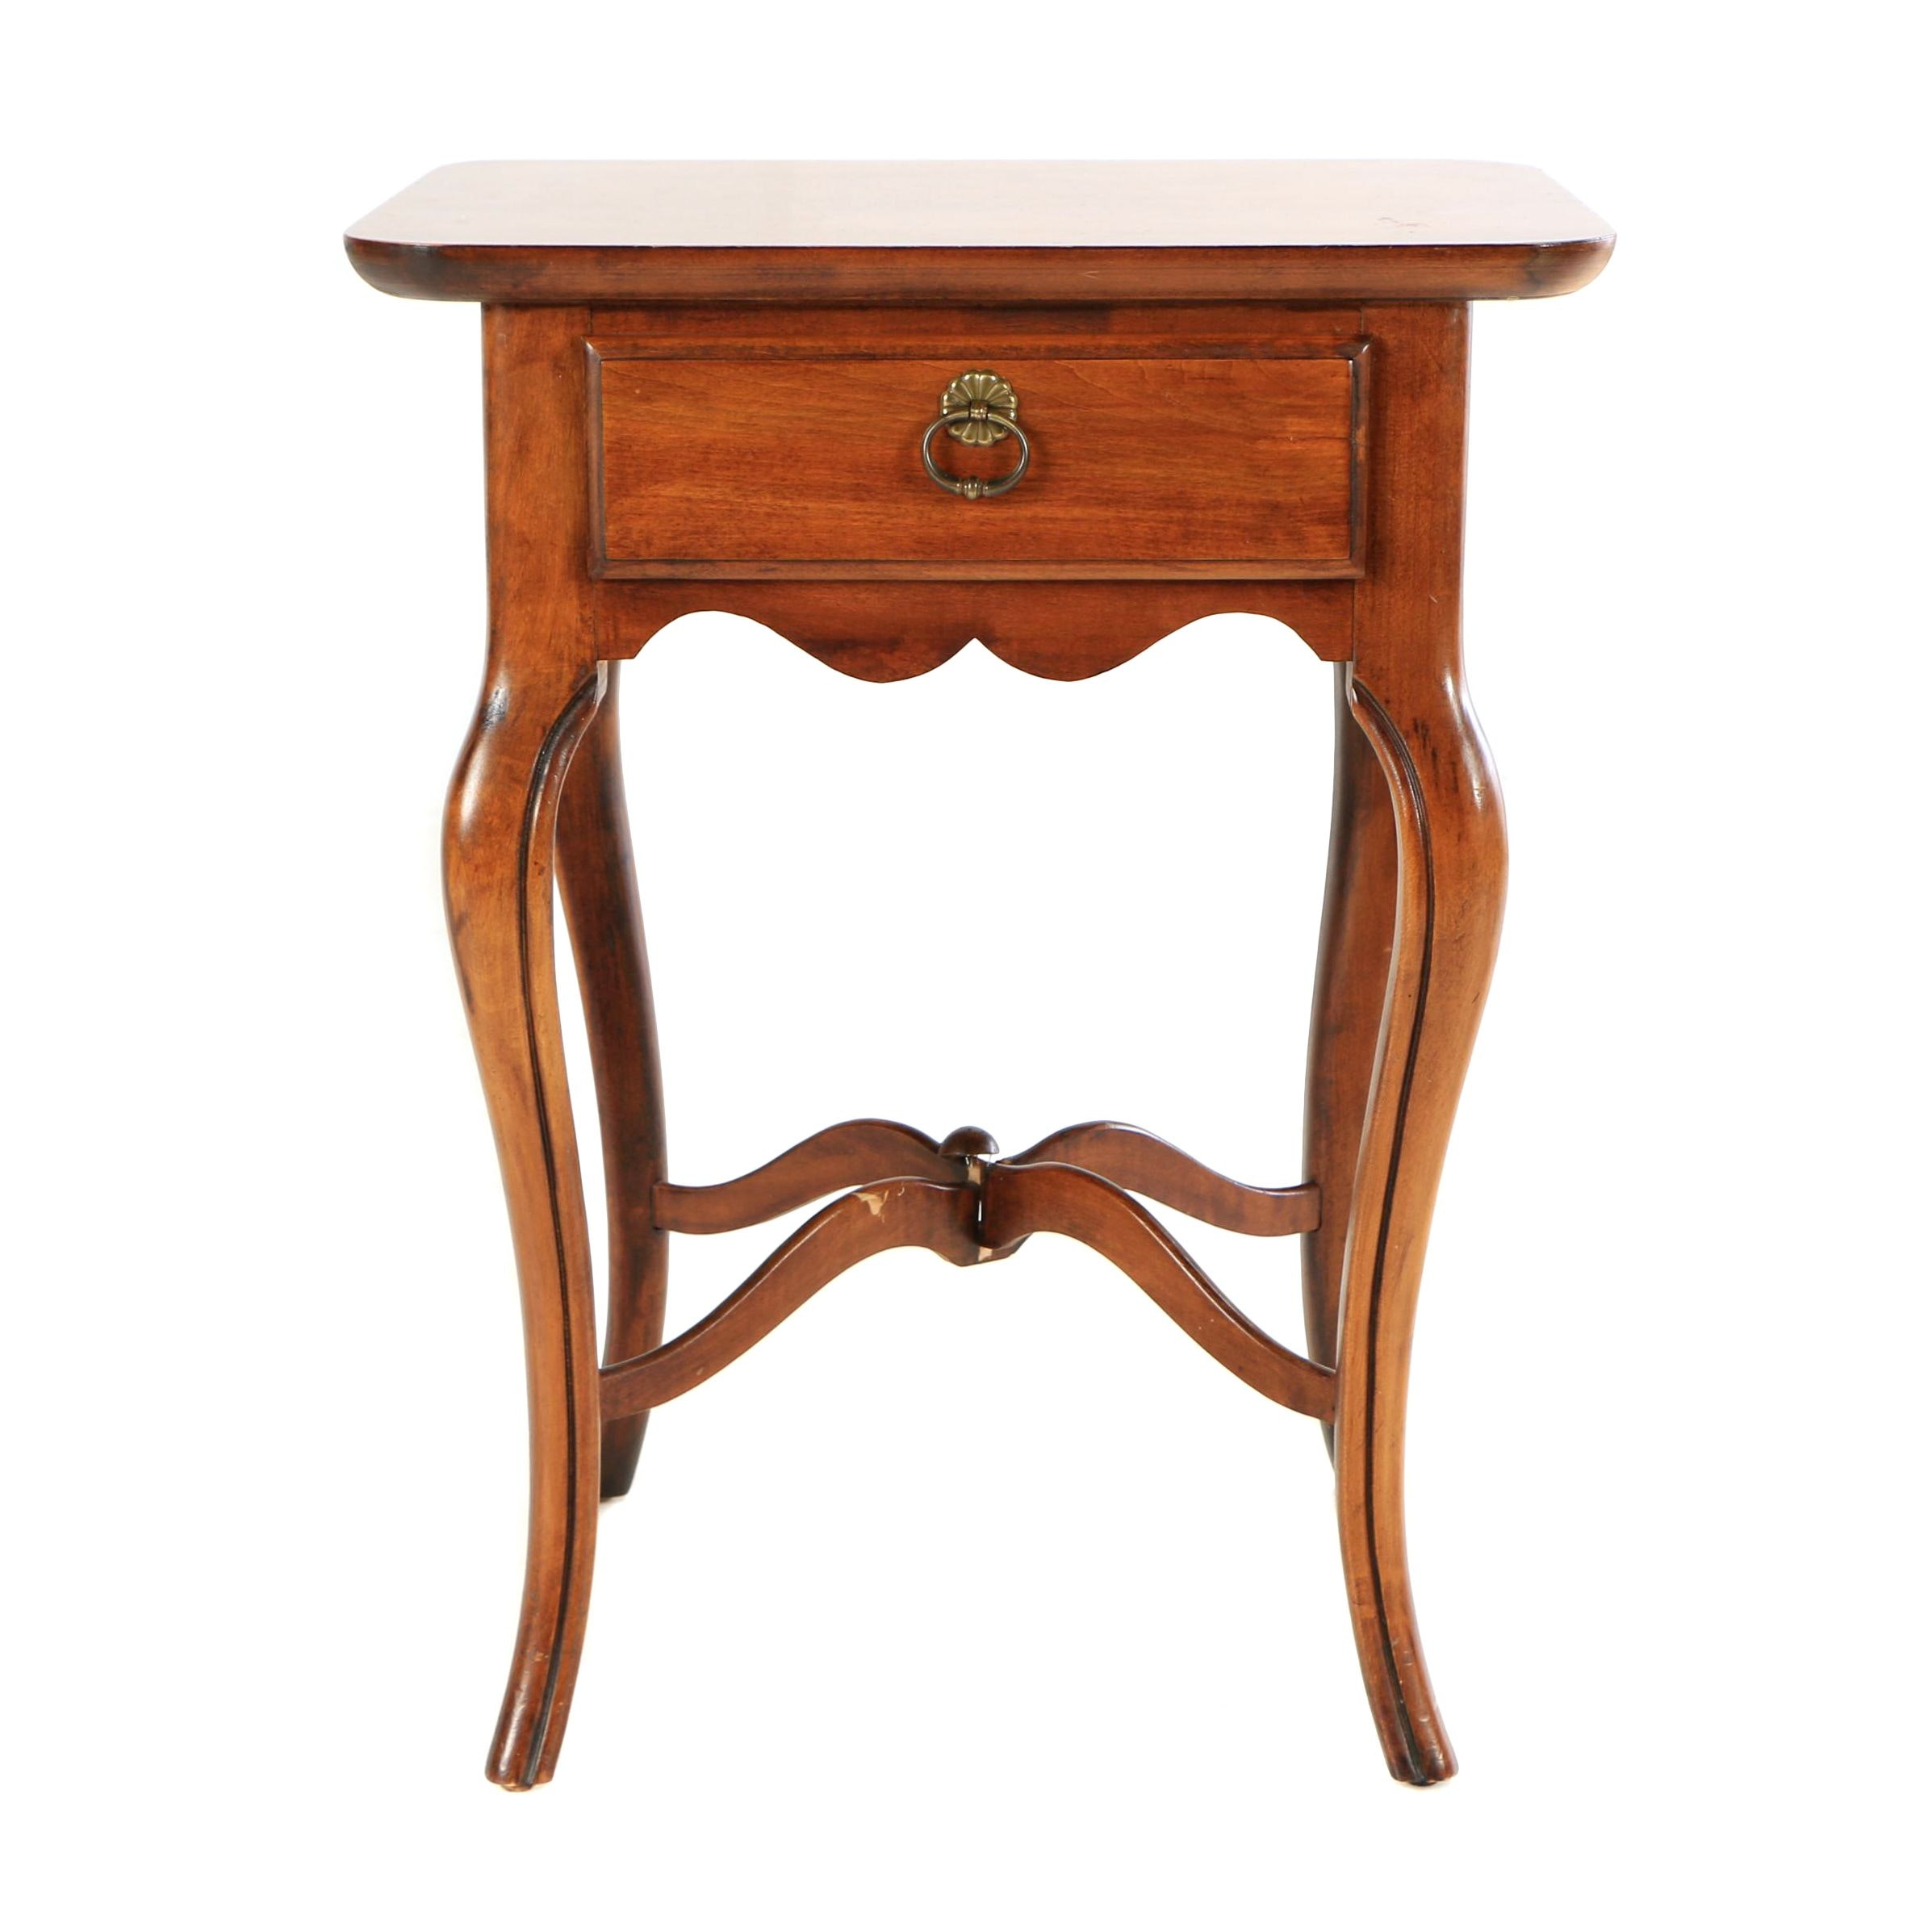 French Provincial Style Cherry Finish End Table, 20th Century